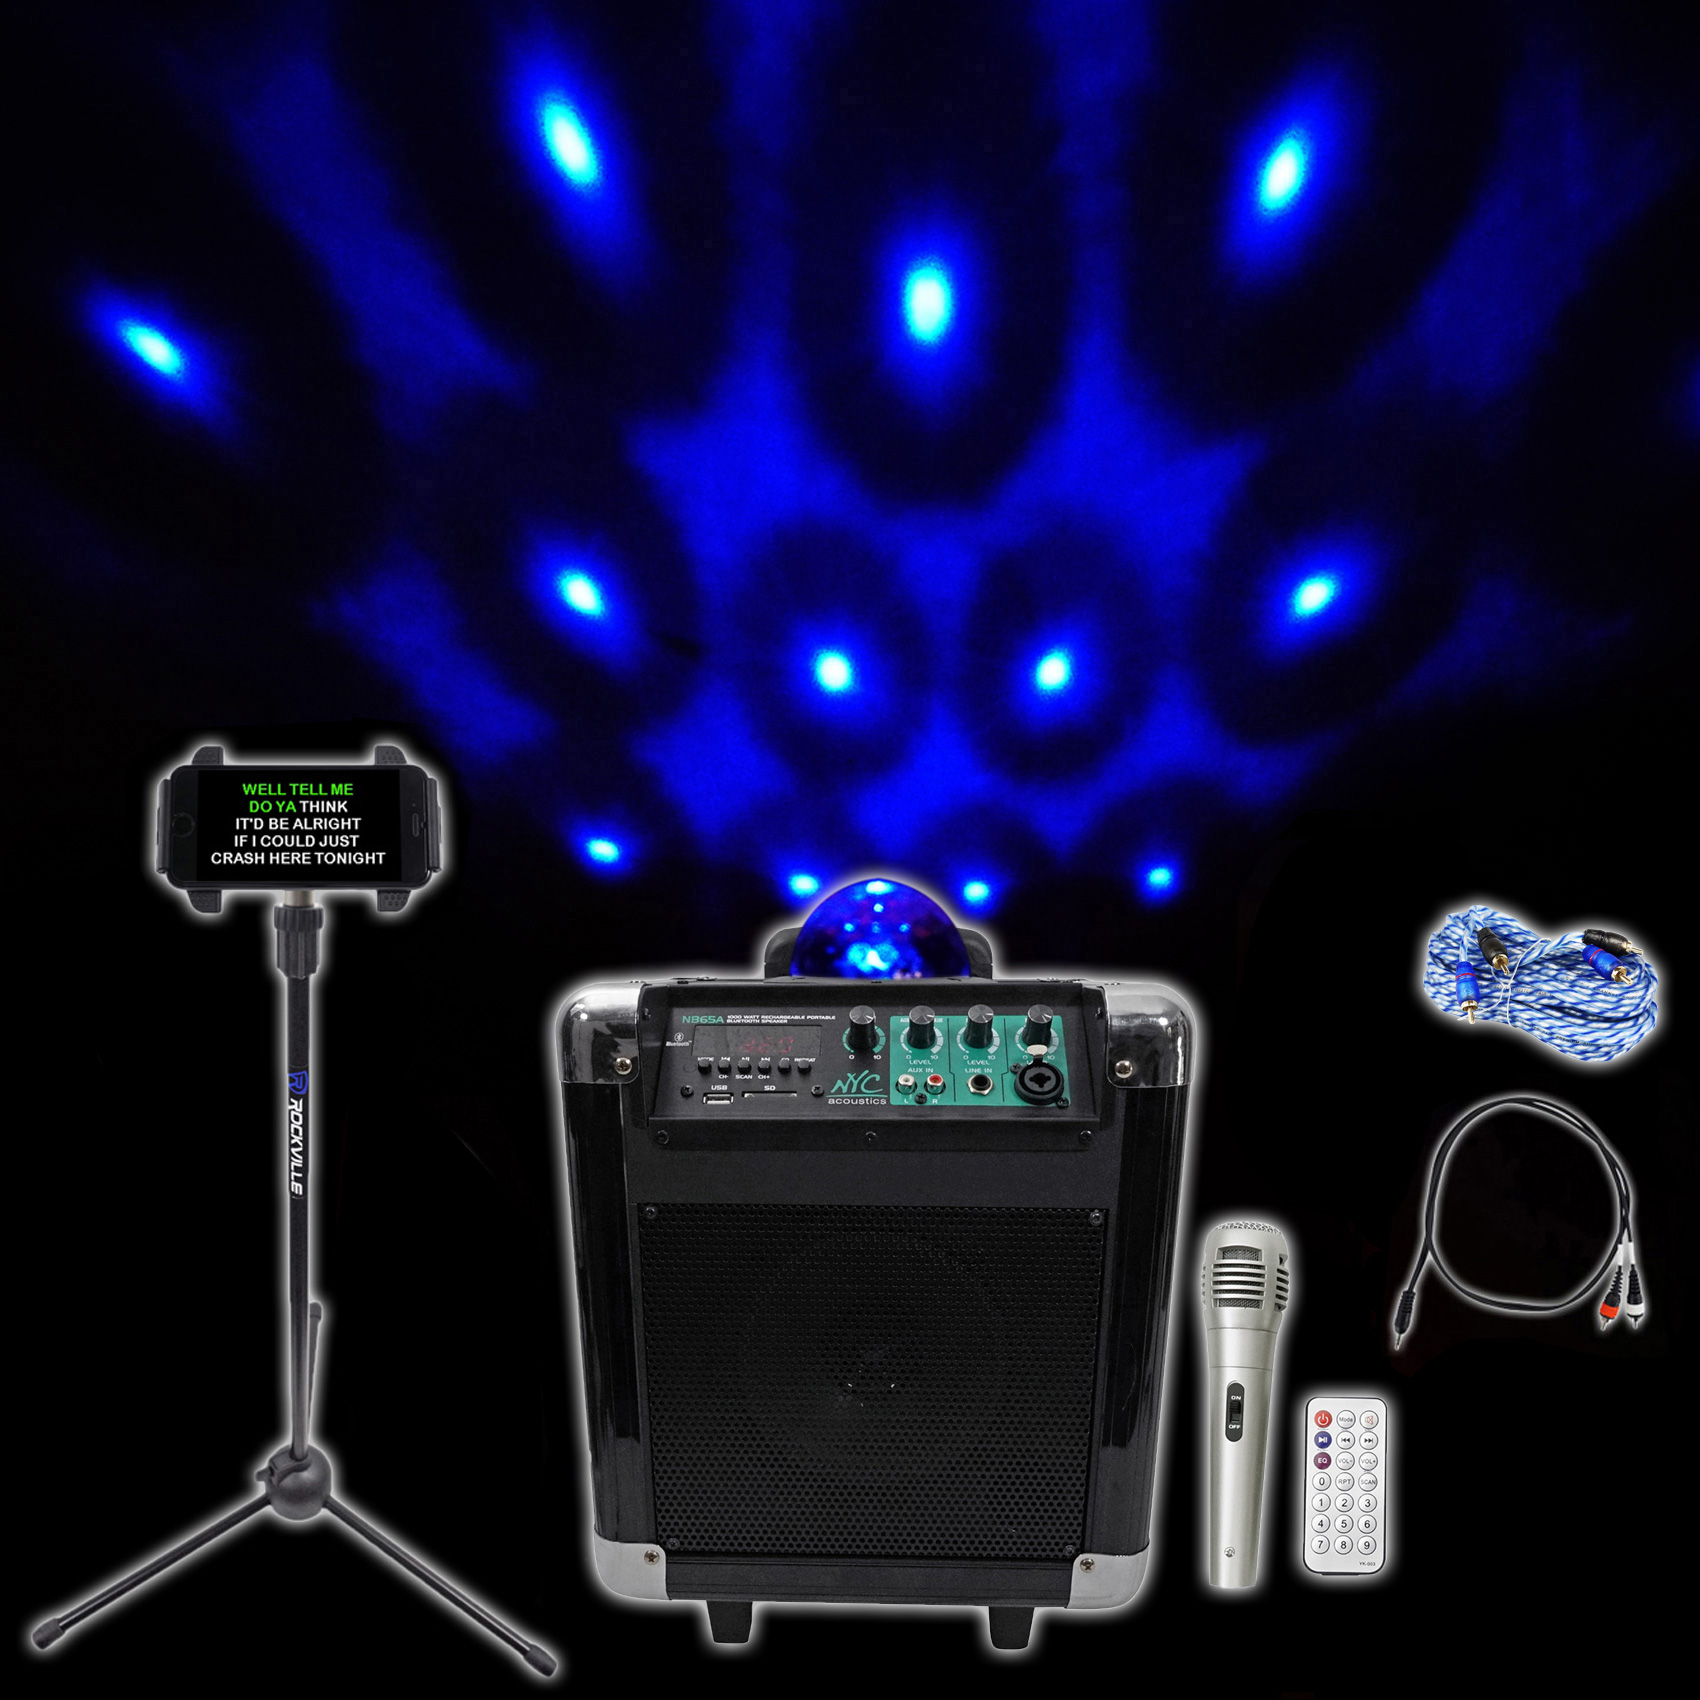 "NYC Acoustics 6.5"""" Karaoke Machine System 4 ipad iphone Android Tablet+Lights ! by NYC ACOUSTICS"